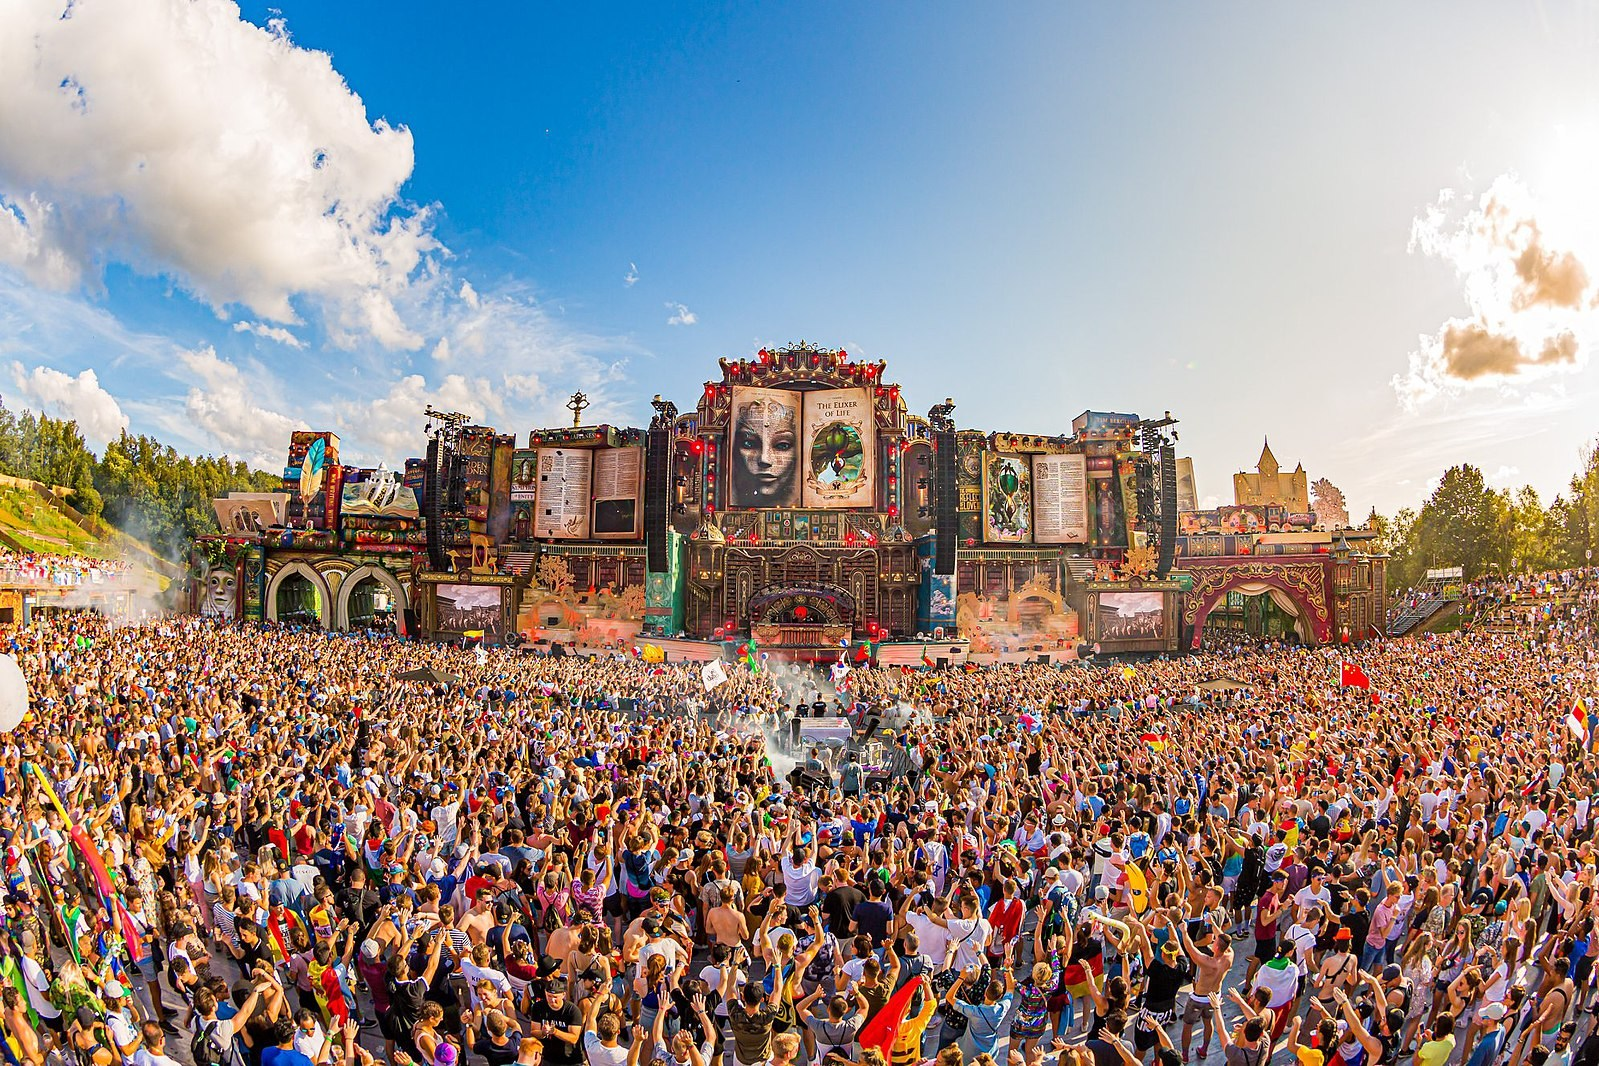 Tomorrowland 2020 officially cancelled due to coronavirus | DJMag.com